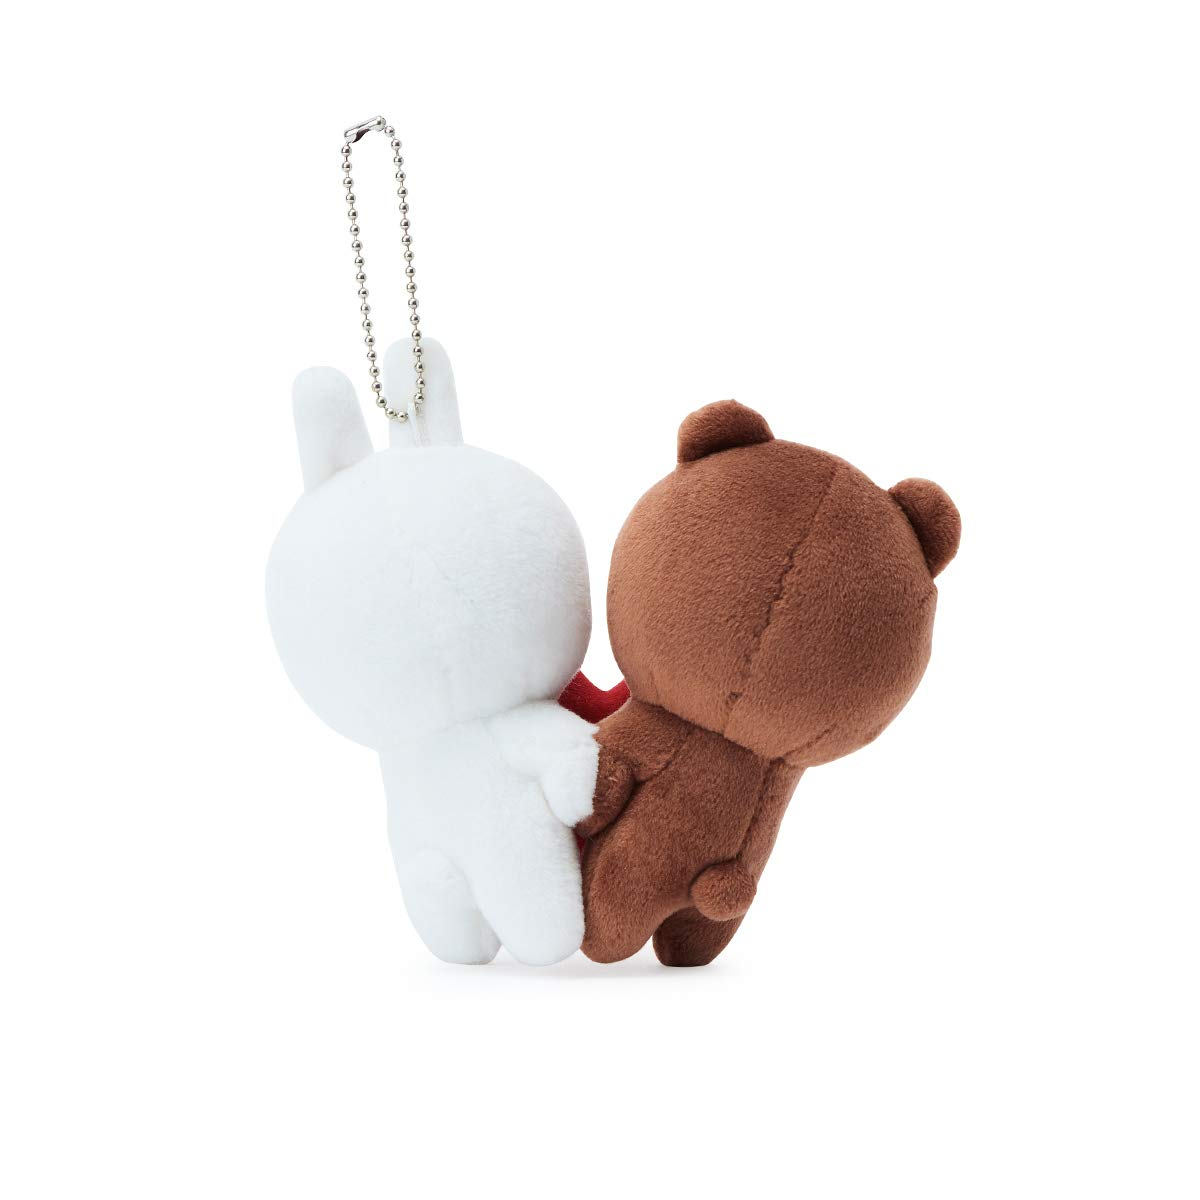 LINE FRIENDS Love Bag Charm - BF Character Keychain Décor 15CM, Brown/White by LINE FRIENDS (Image #4)